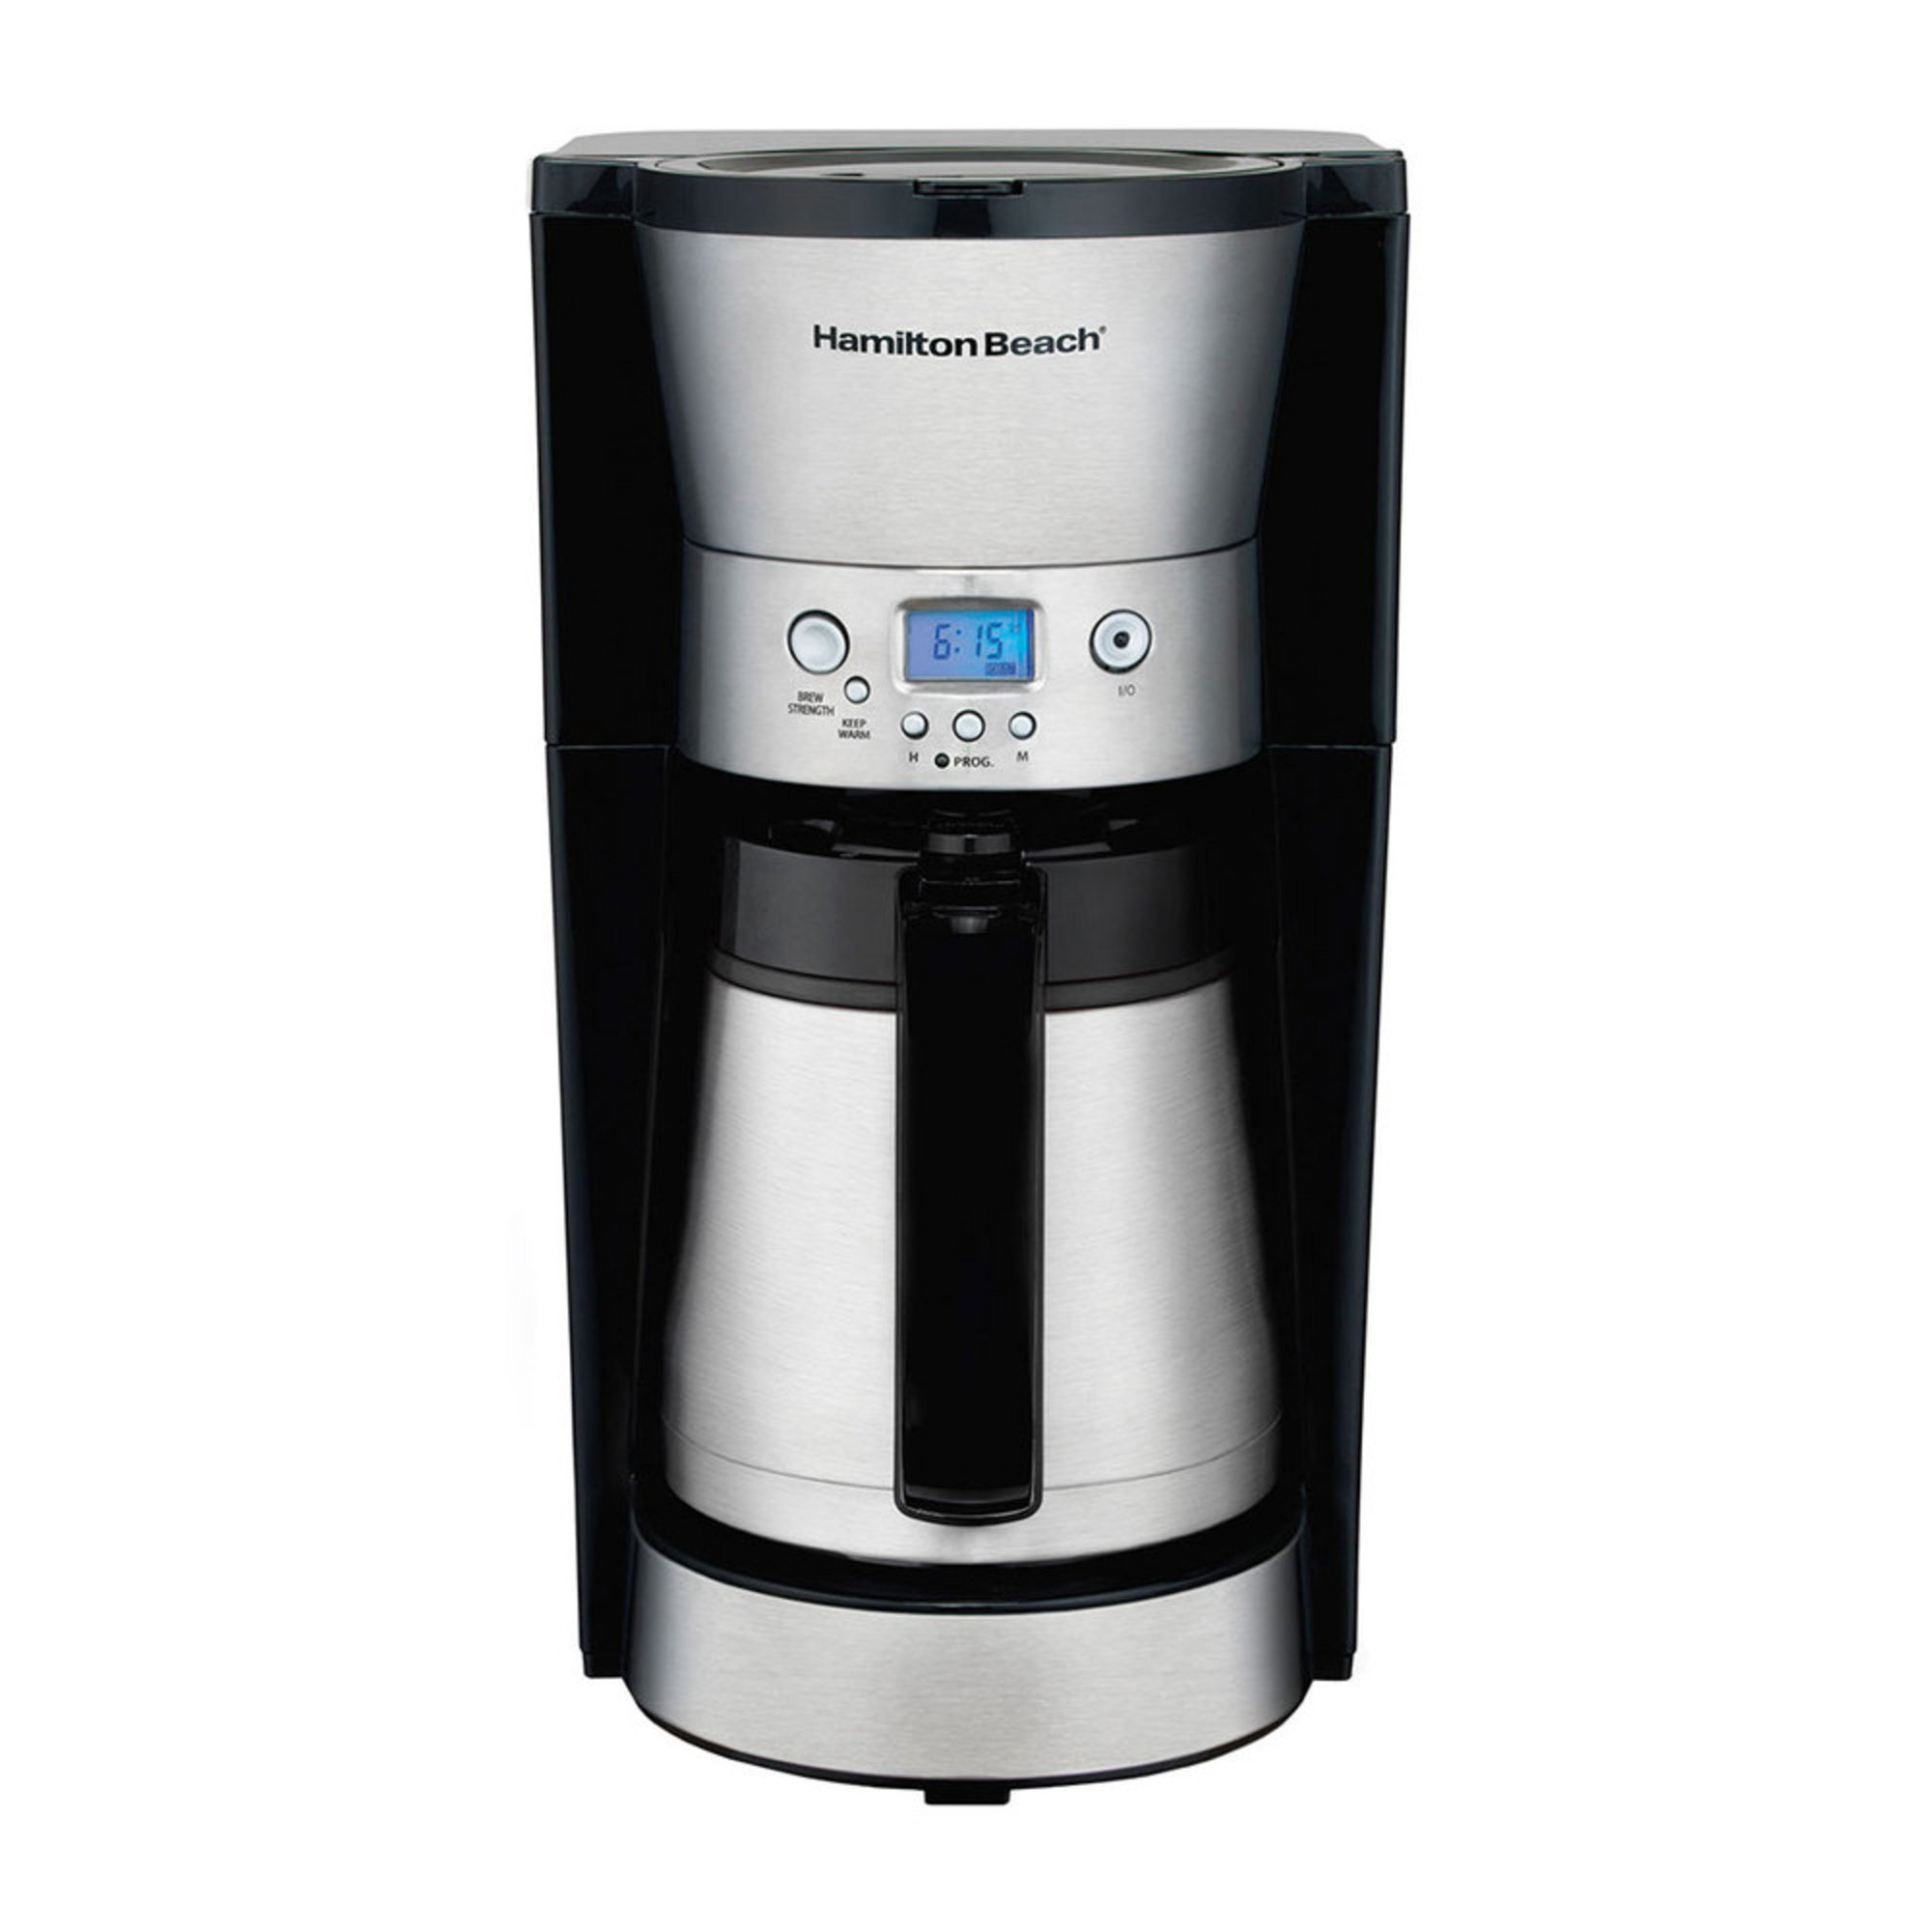 Programmable Thermal Coffee Maker Reviews : Hamilton Beach Programmable Thermal Coffee Maker (46897z) Coffee Makers For The Home - Shop ...